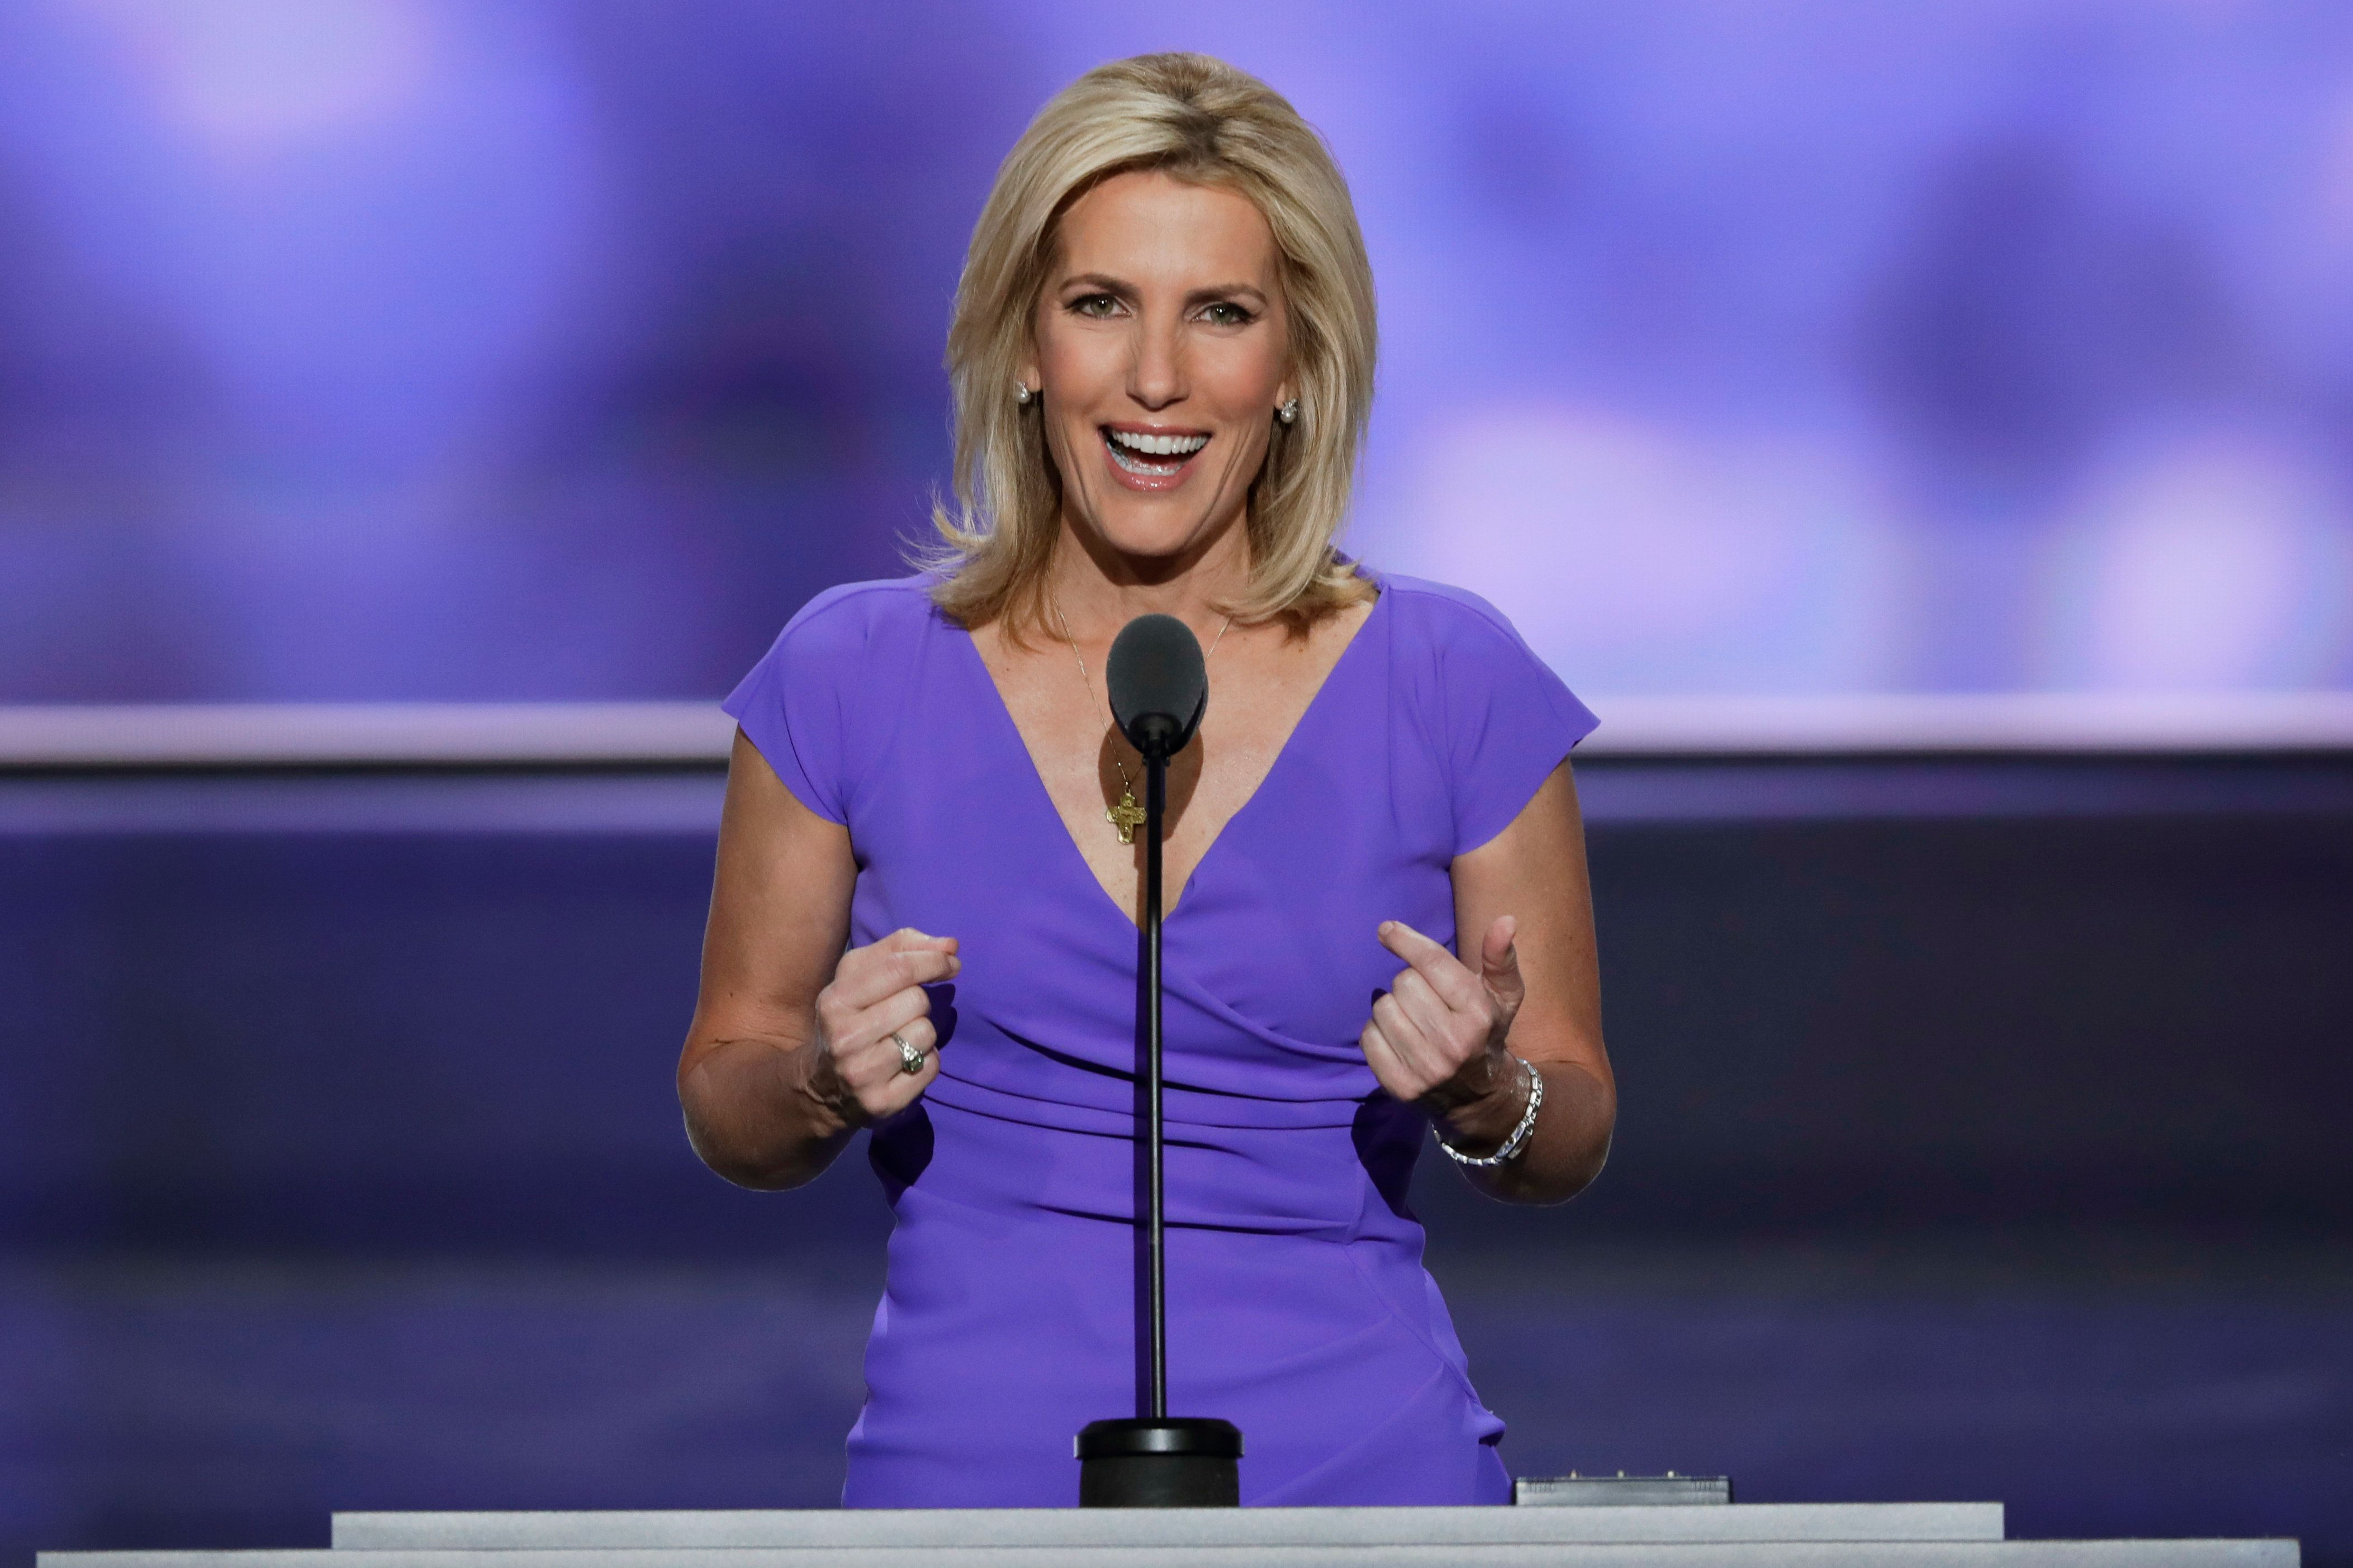 """FILE - In this July 20, 2016 file photo, Conservative political commentator Laura Ingraham speaks during the third day of the Republican National Convention in Cleveland.  Ingraham's next book is a tribute to President Donald Trump, and a warning. The conservative commentator's """"Billionaire at the Barricades: The Populist Revolution"""" is the first major acquisition by the new All Points Books imprint at St. Martin's Press. All Points, which will specialize in politics and current affairs, told The Associated Press on Friday, April 7, 2017,  that the book is scheduled for October 10.(AP Photo/J. Scott Applewhite, File)"""